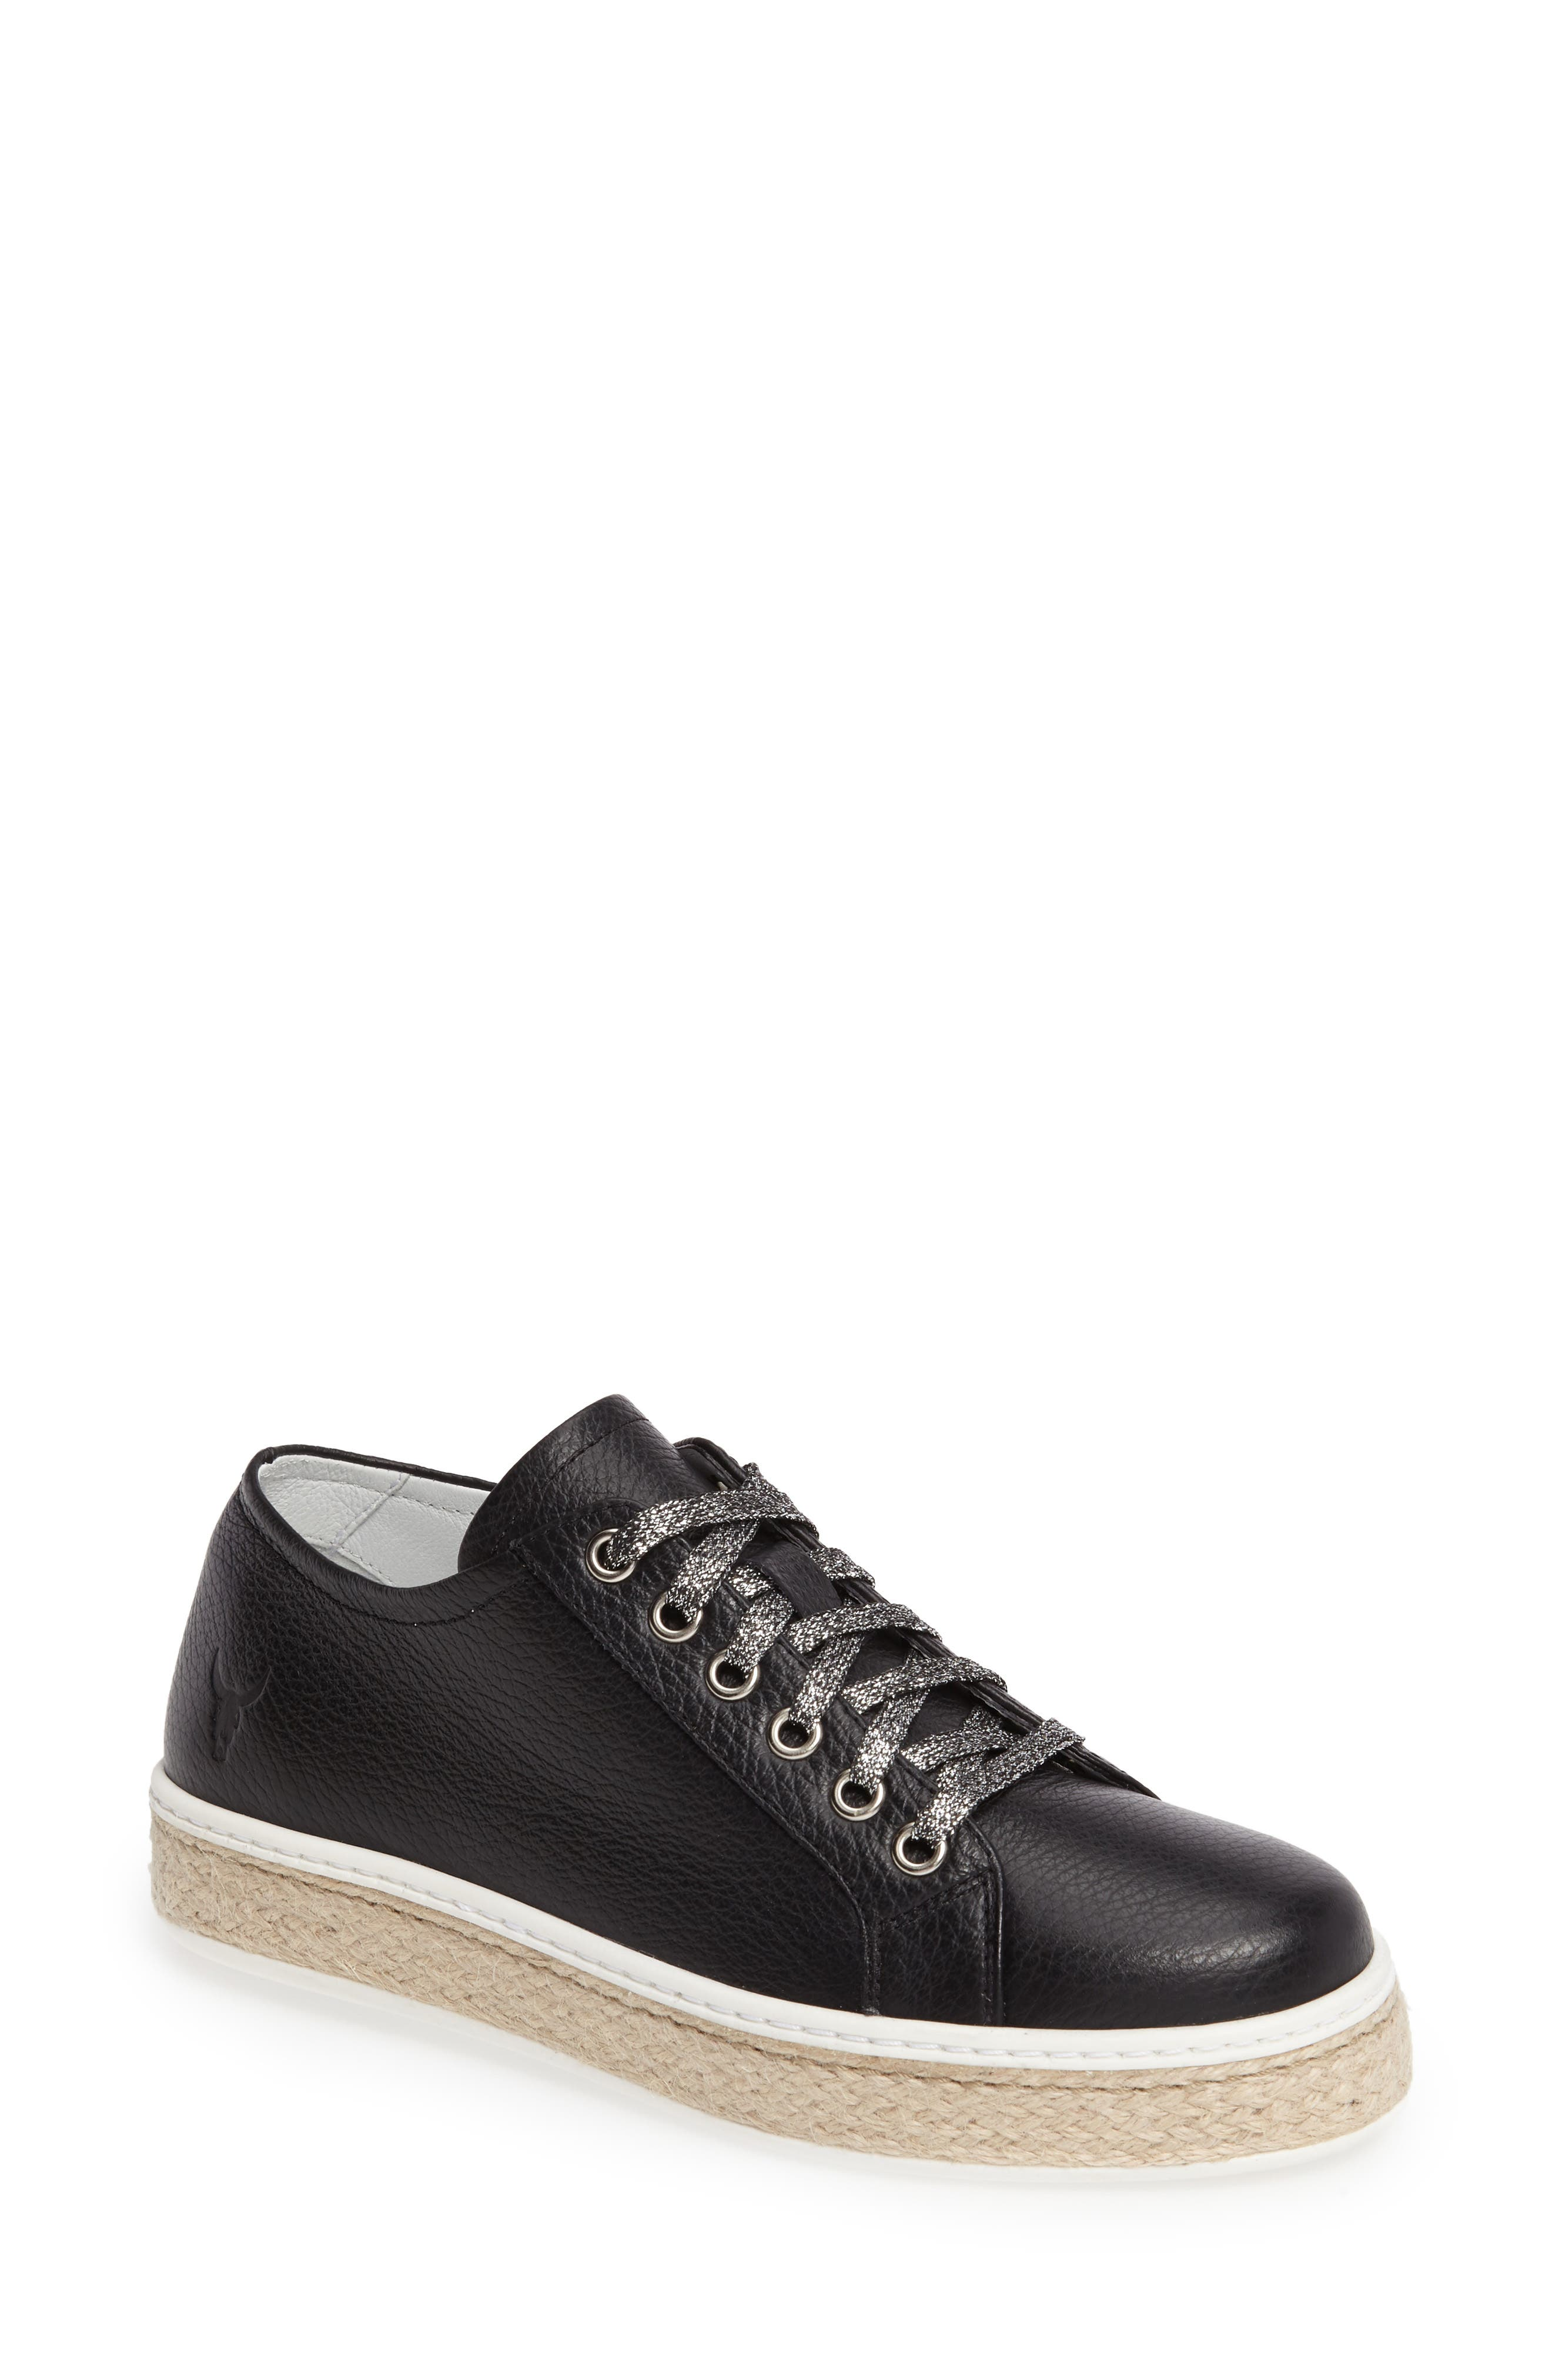 Bevany Sneaker,                             Main thumbnail 1, color,                             BLACK LEATHER